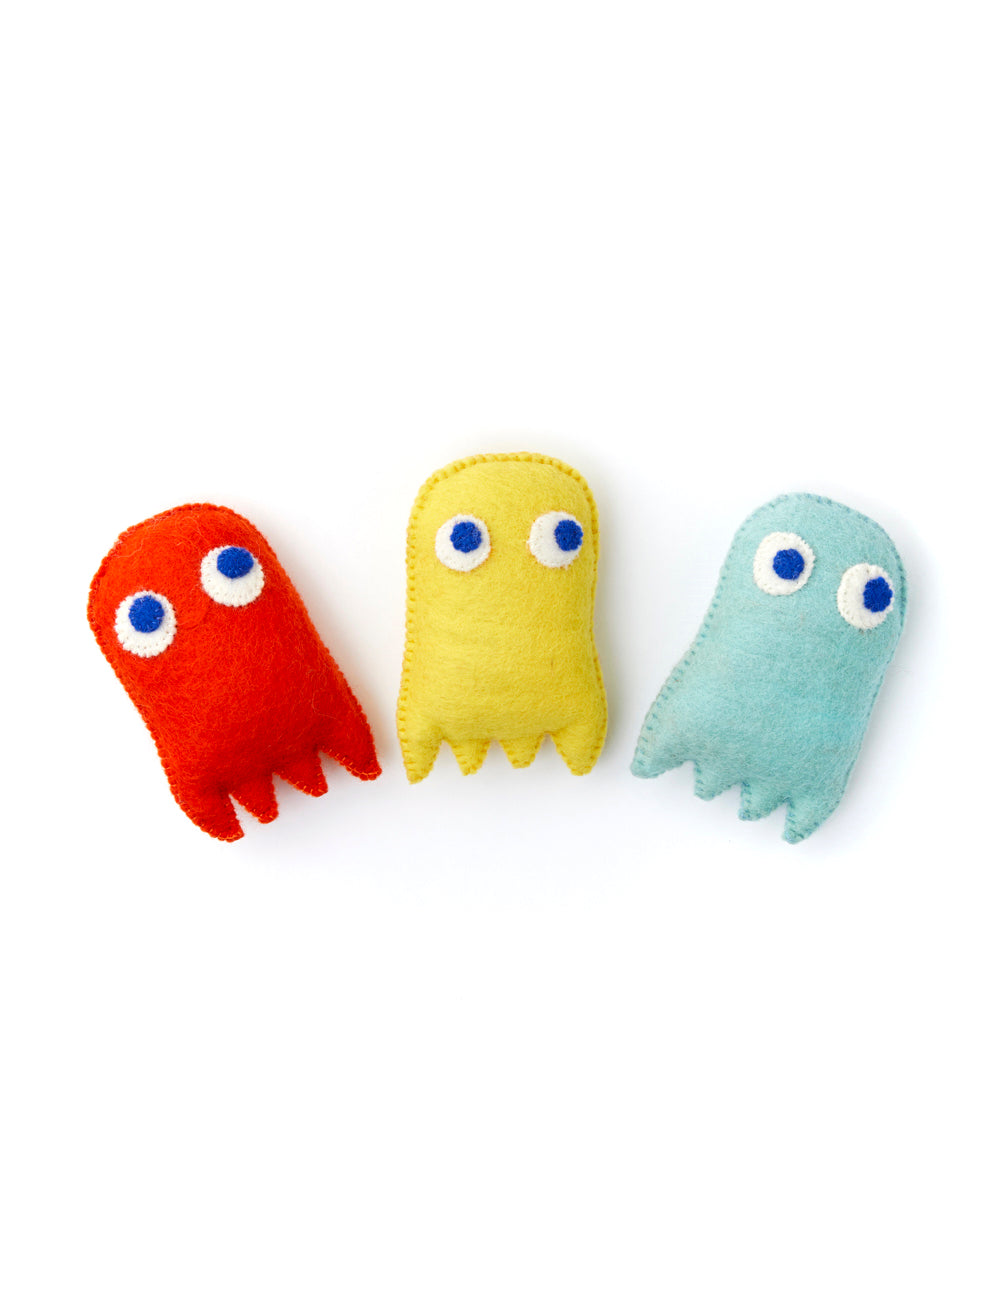 Pacman Dog Toy | Blue